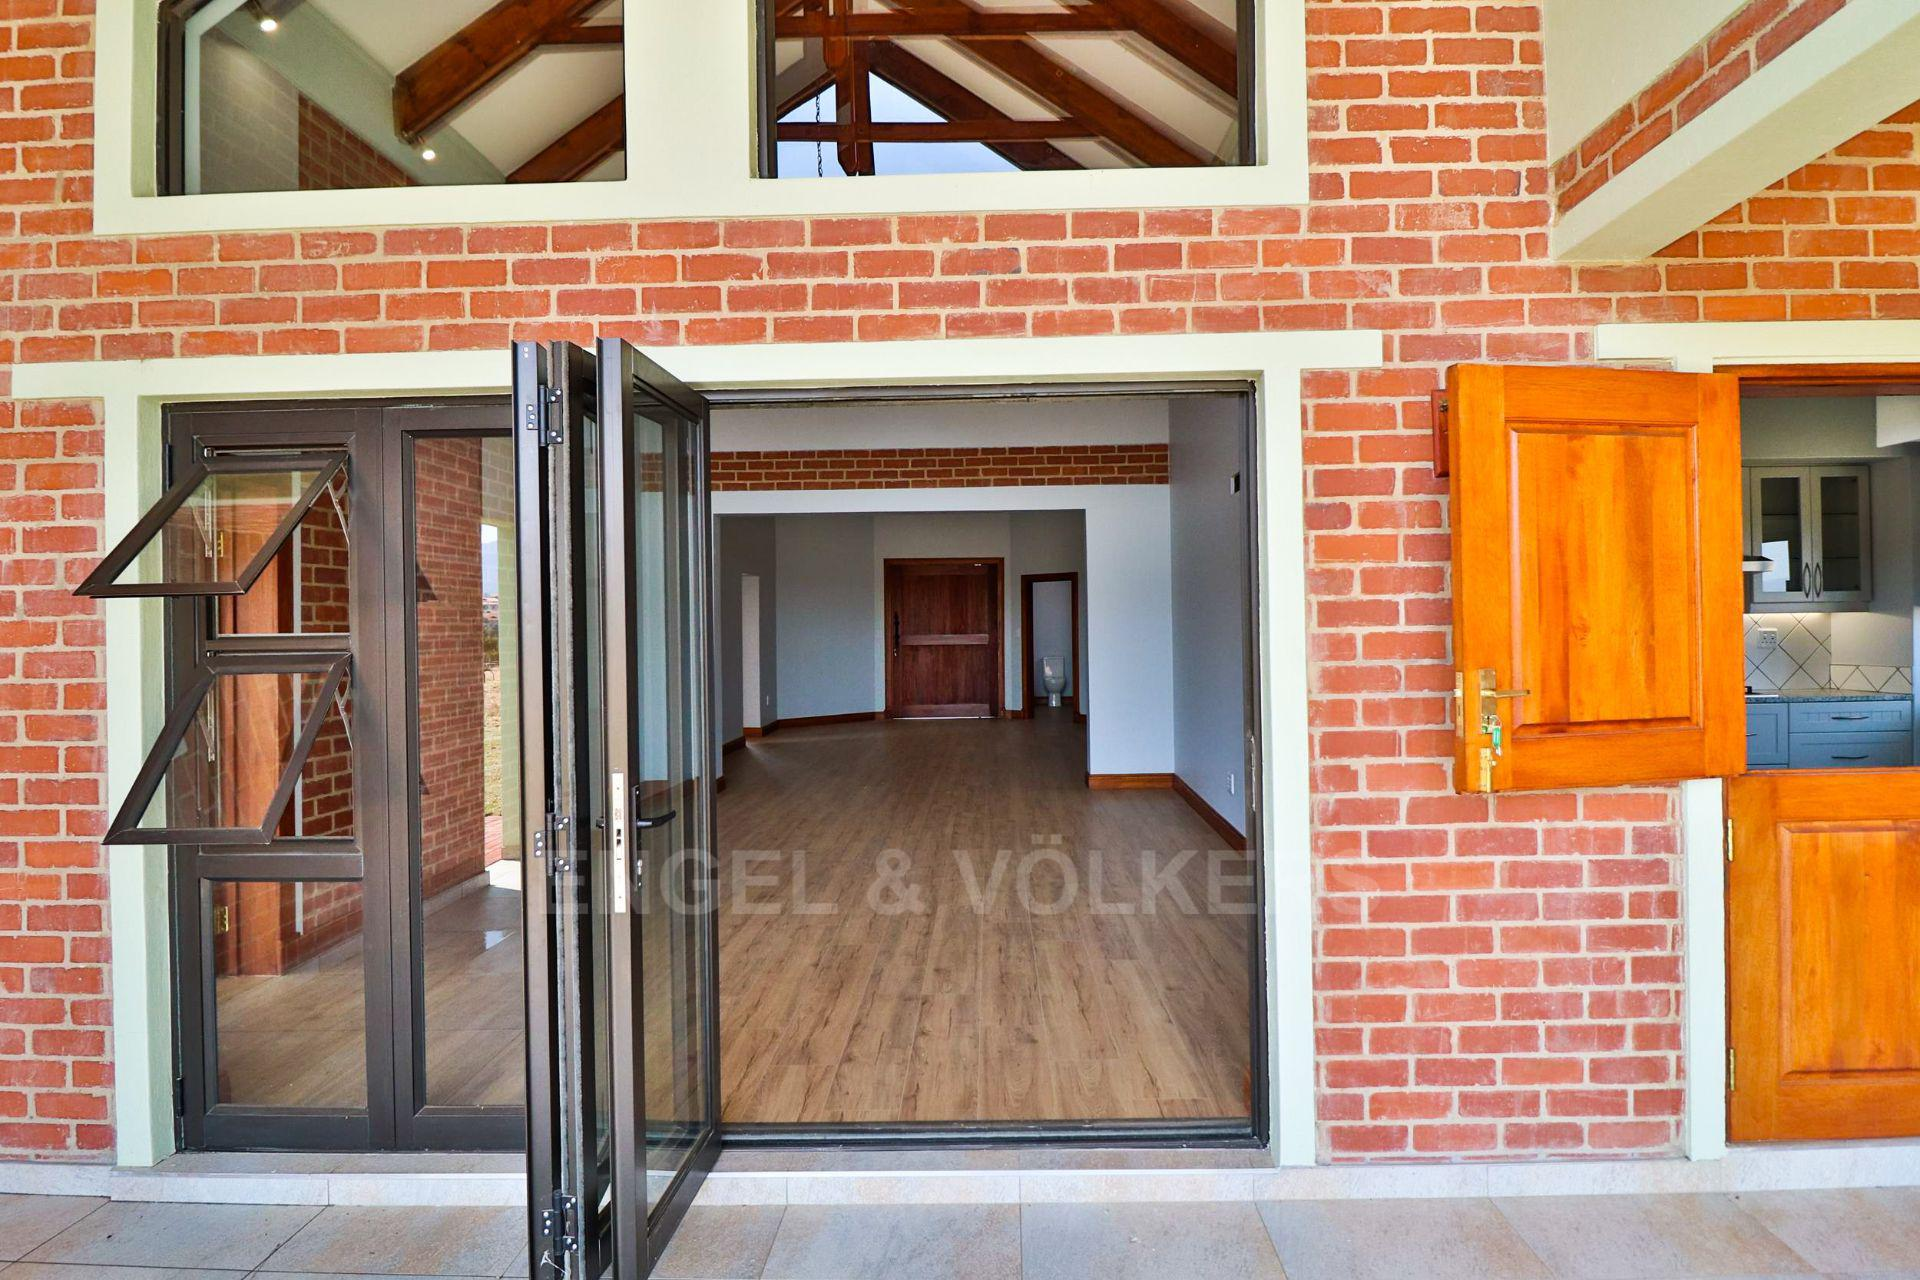 House in Landsmeer - View to inside house